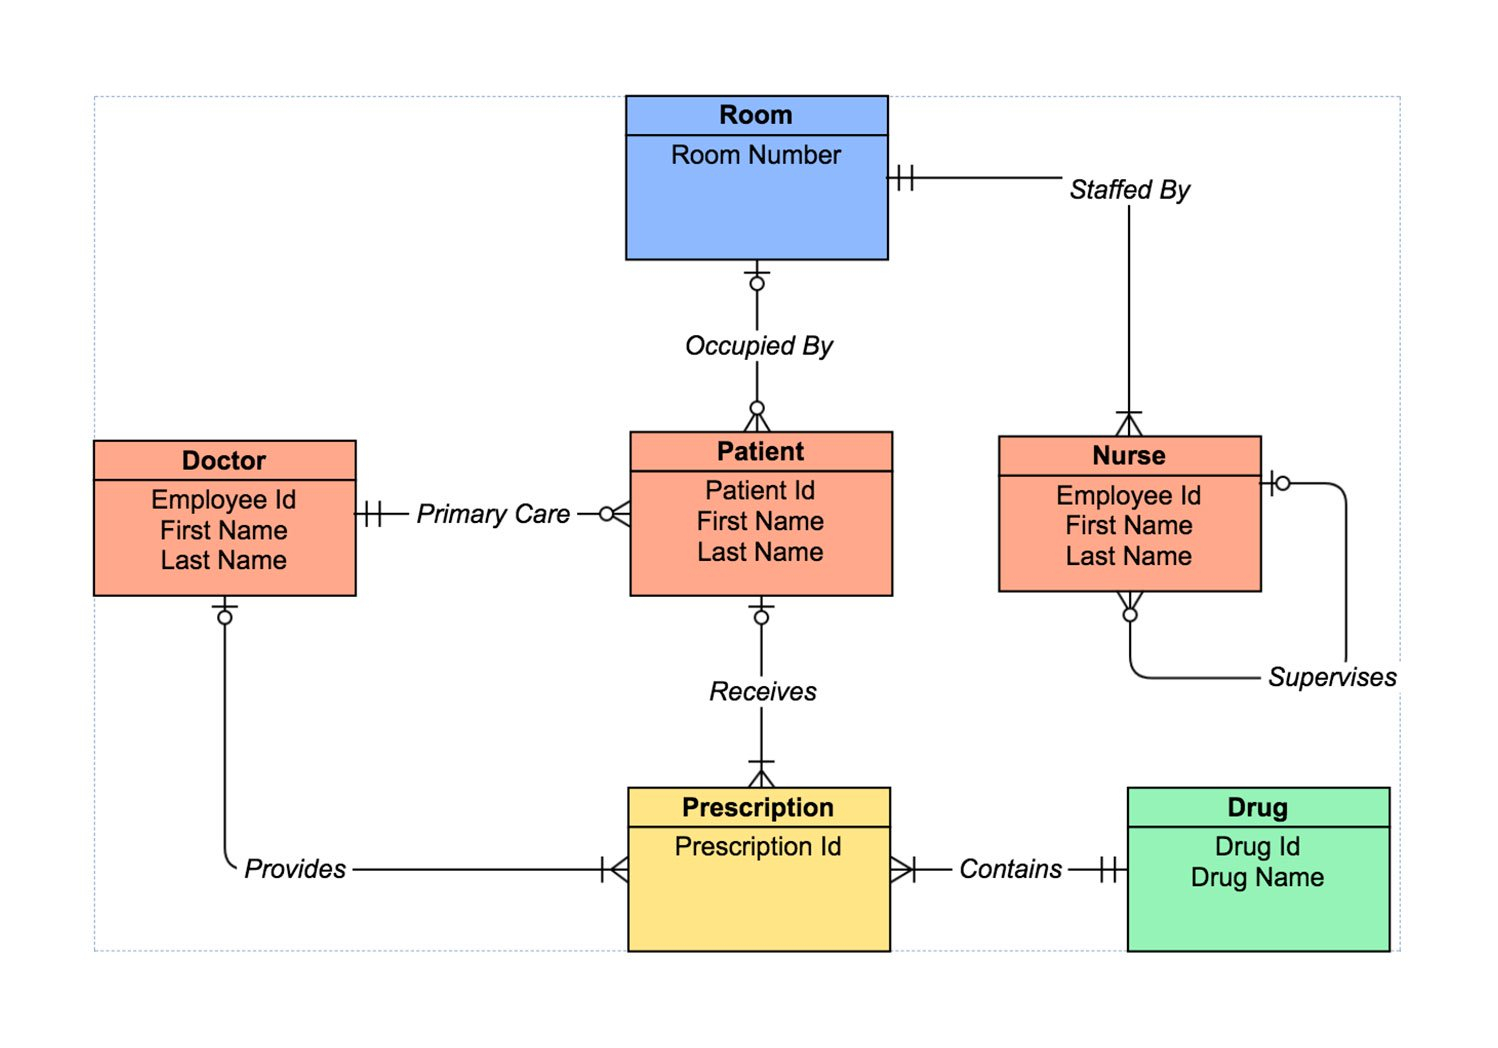 Er Diagram Tool | Draw Er Diagrams Online | Gliffy with regard to Entity Relationship Diagram Examples With Solutions